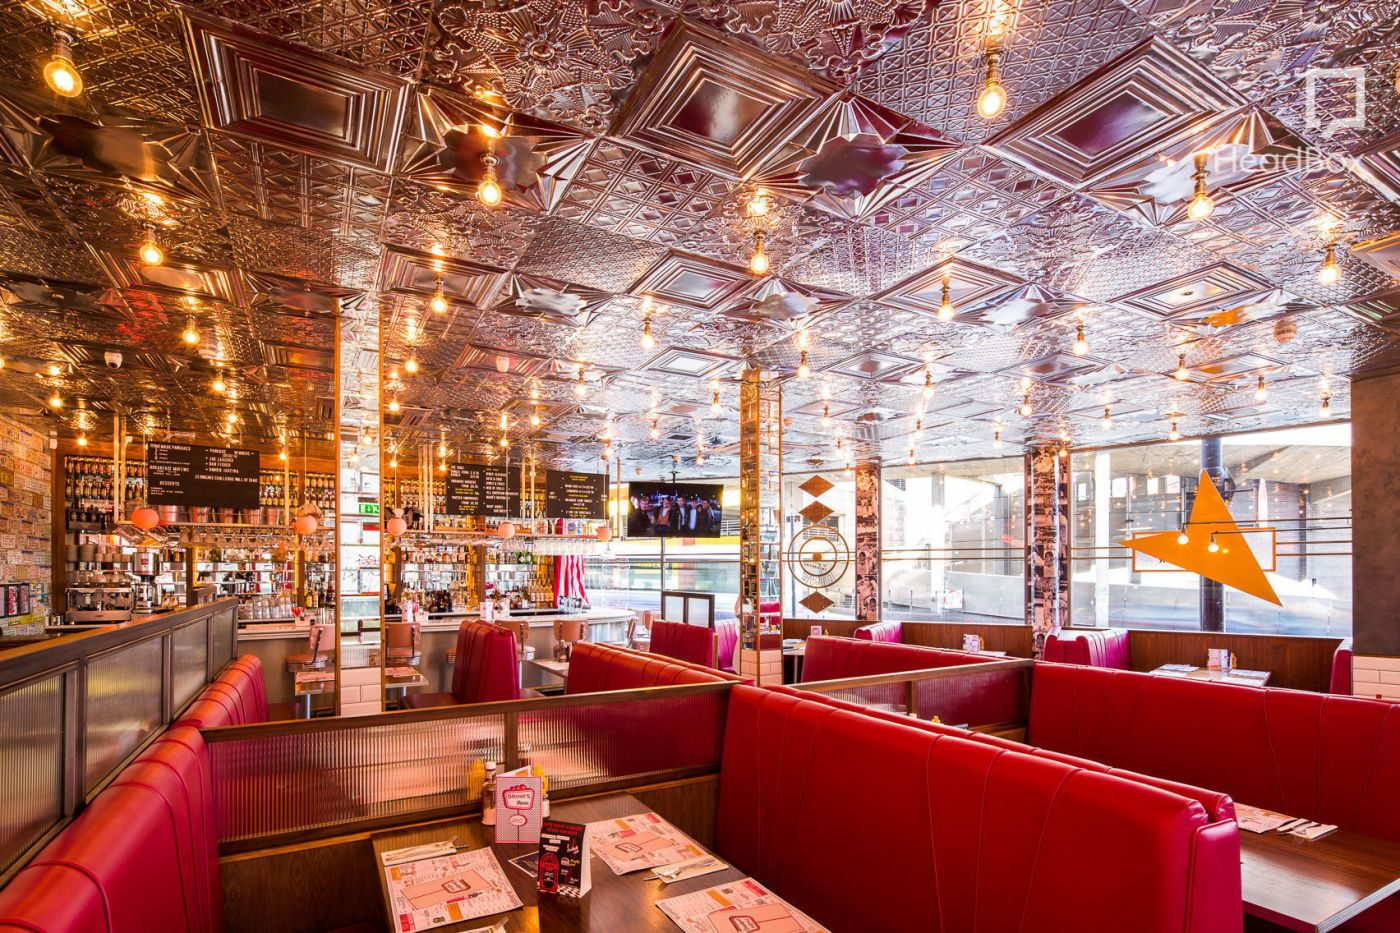 An American style diner with red booths